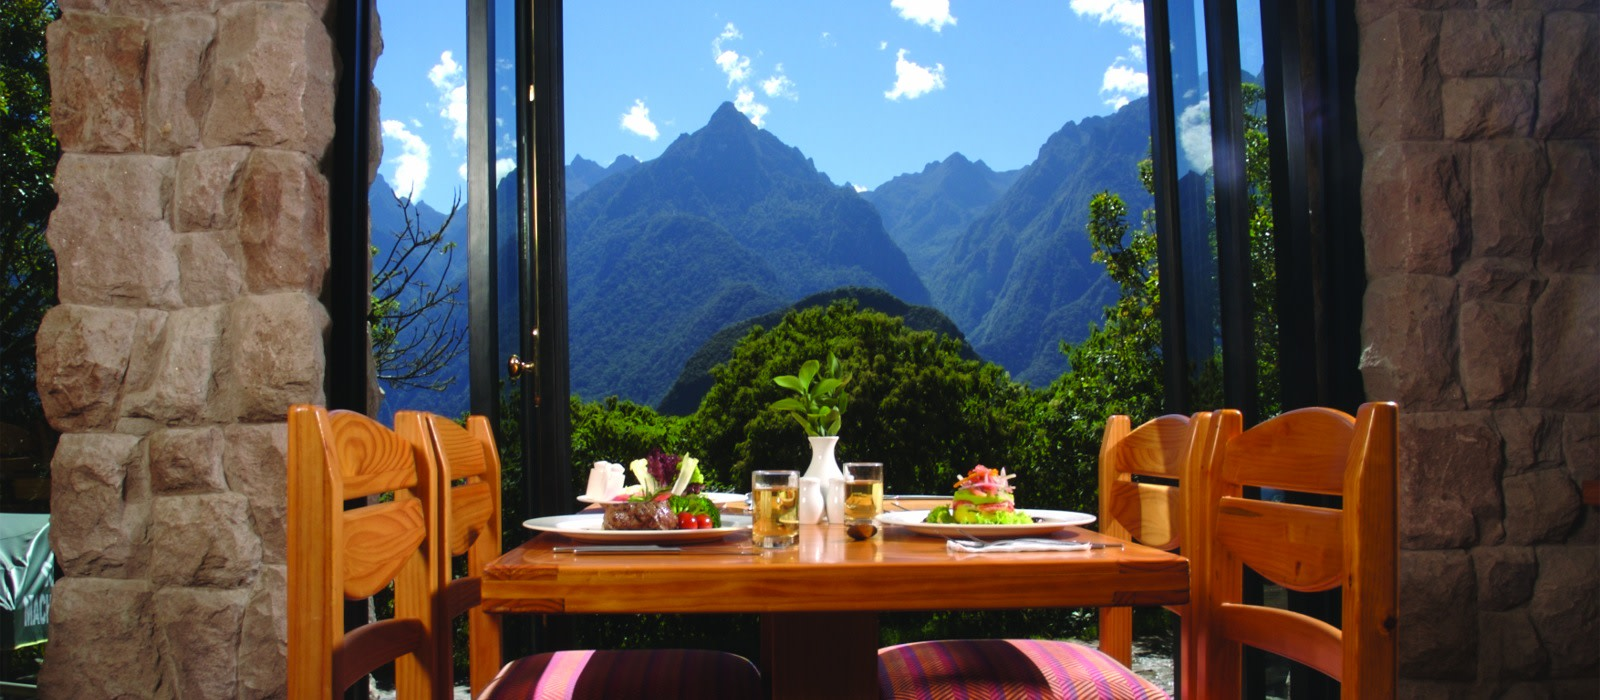 Hotel Belmond Sanctuary Lodge Peru